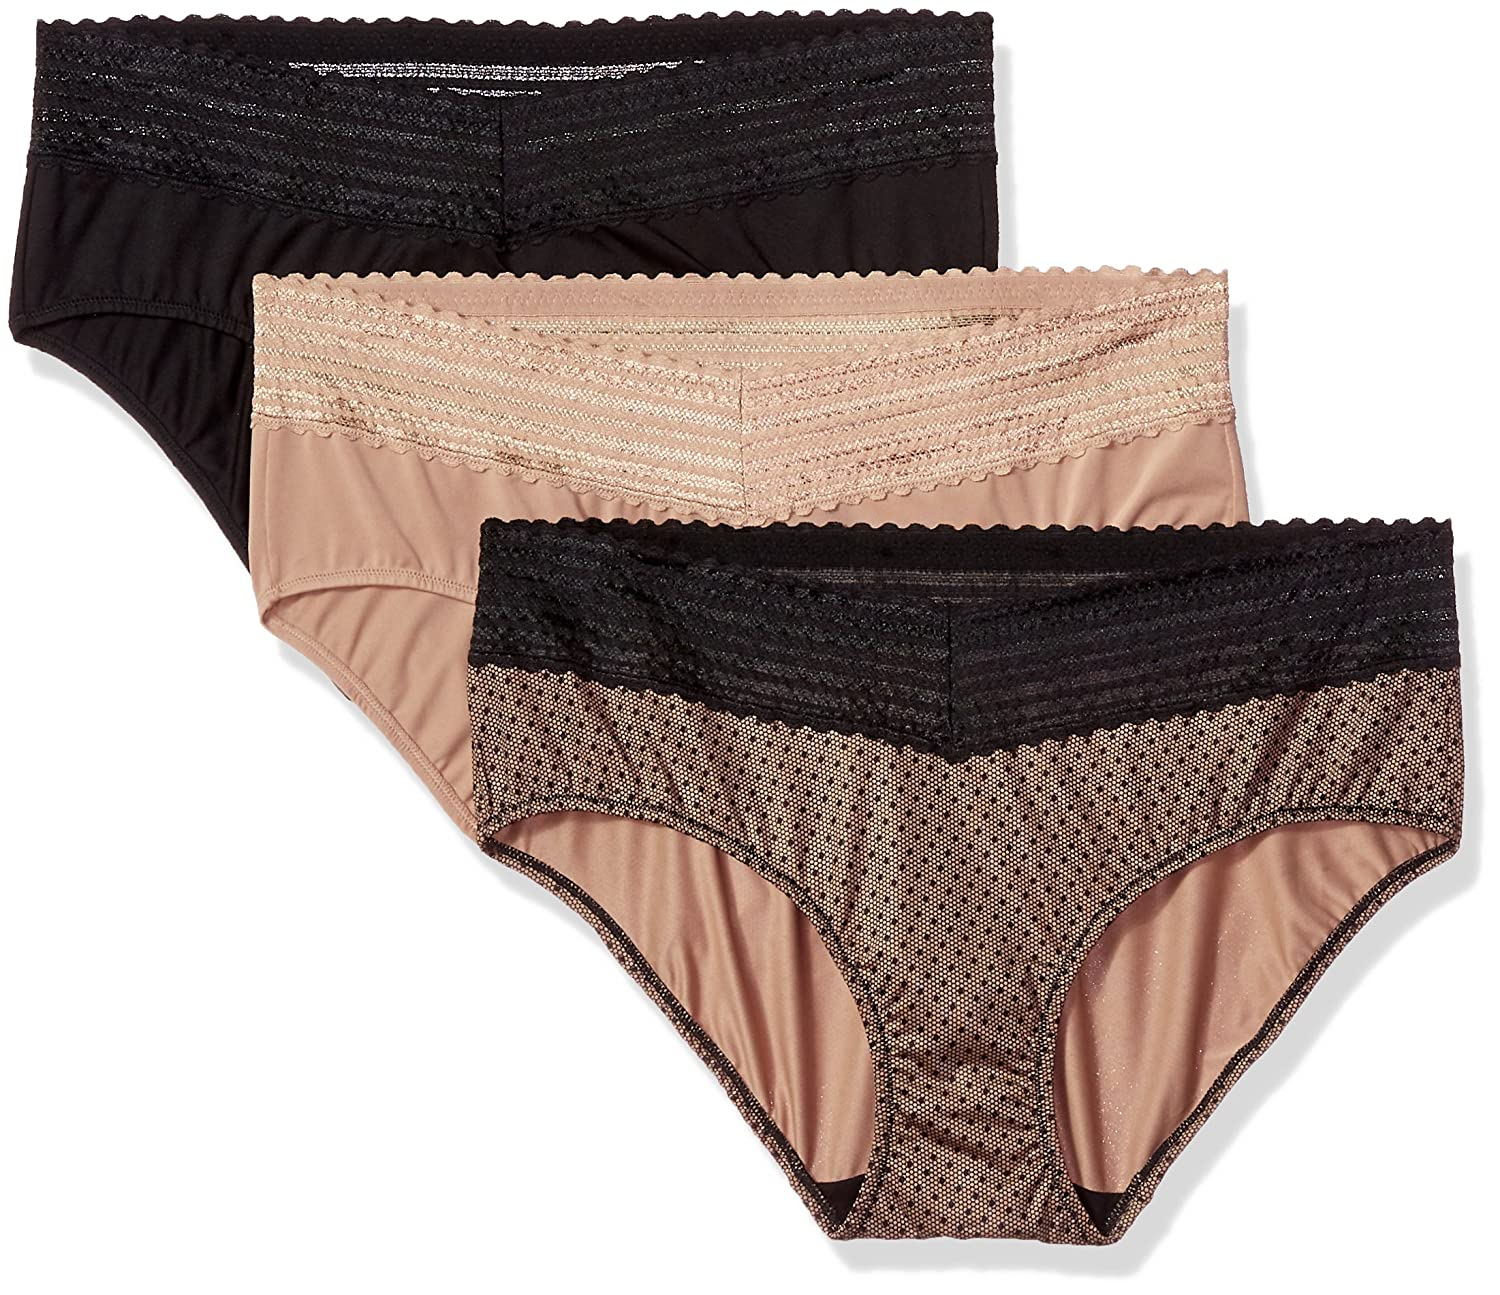 6458feb3e40f Warner's Women's Blissful Benefits No Muffin Top 3 Pack Lace Hipster ...